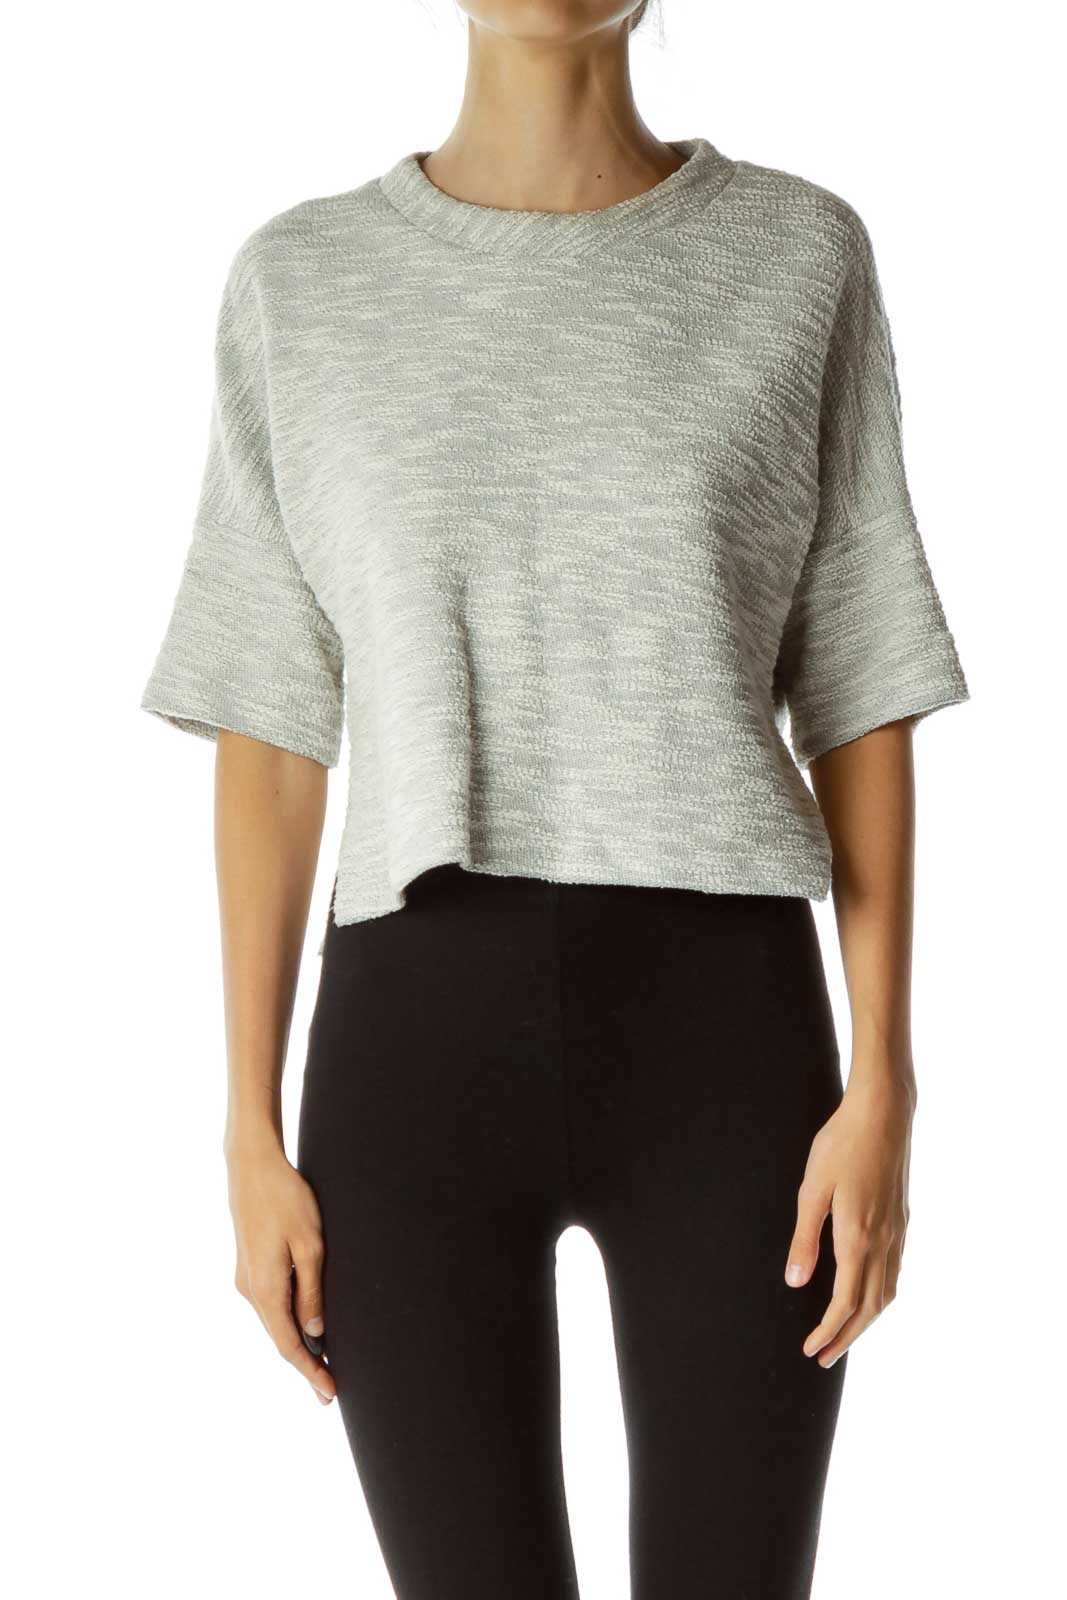 Gray Textured Cropped Top Front